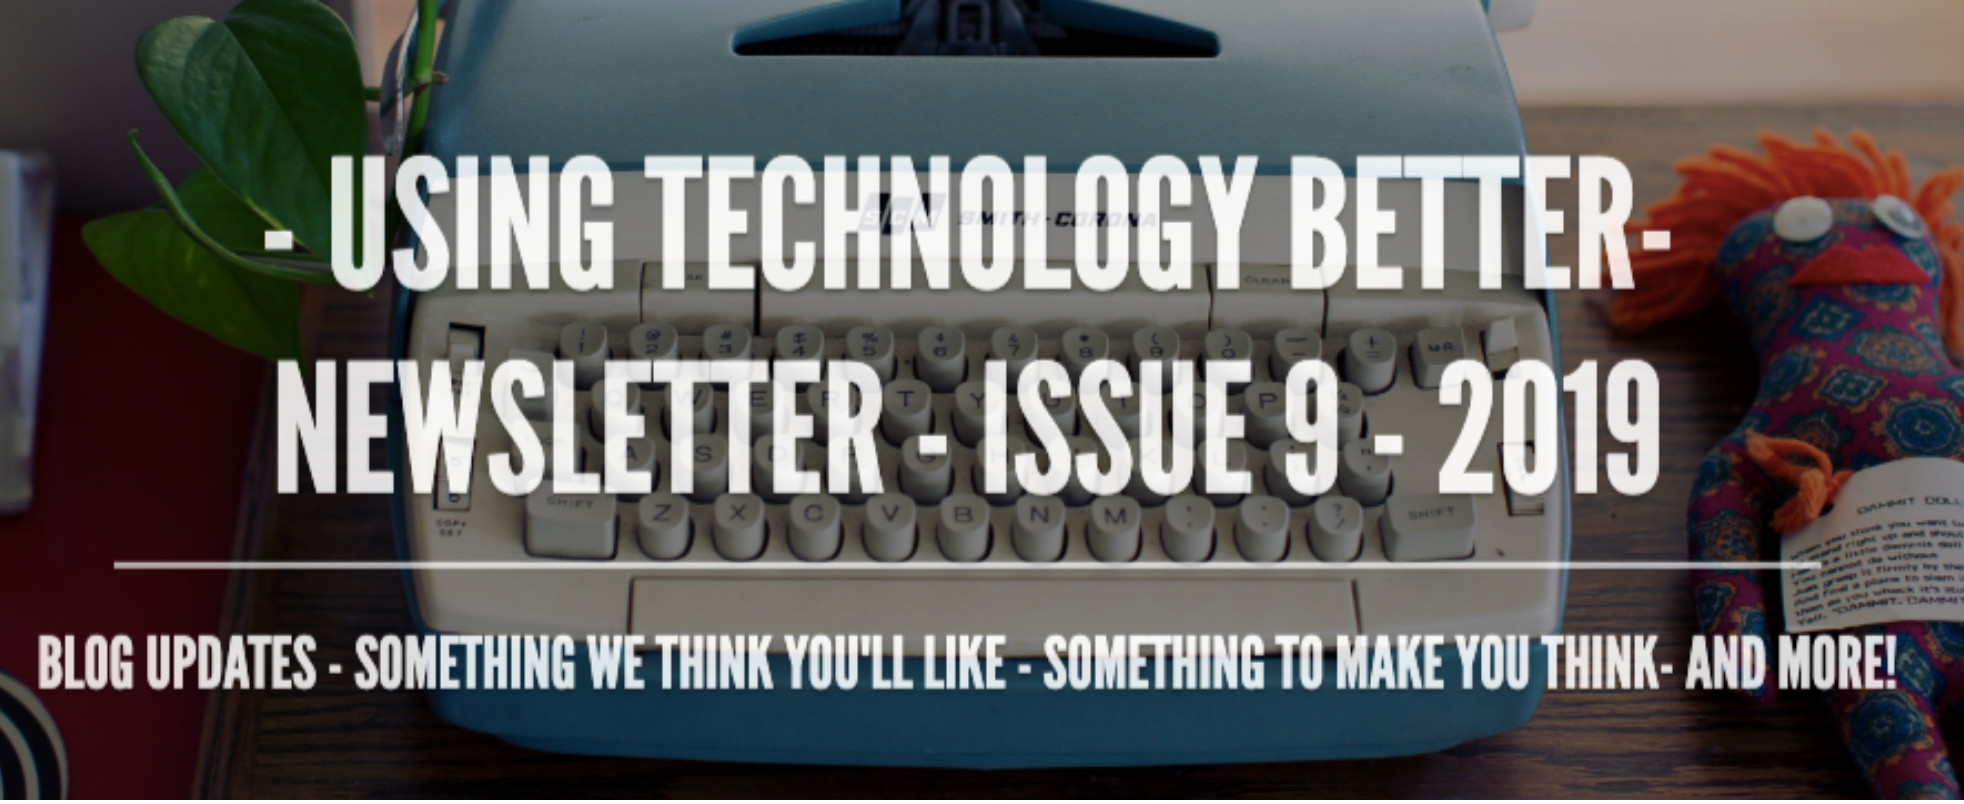 UTB-Newsletter Issue 9